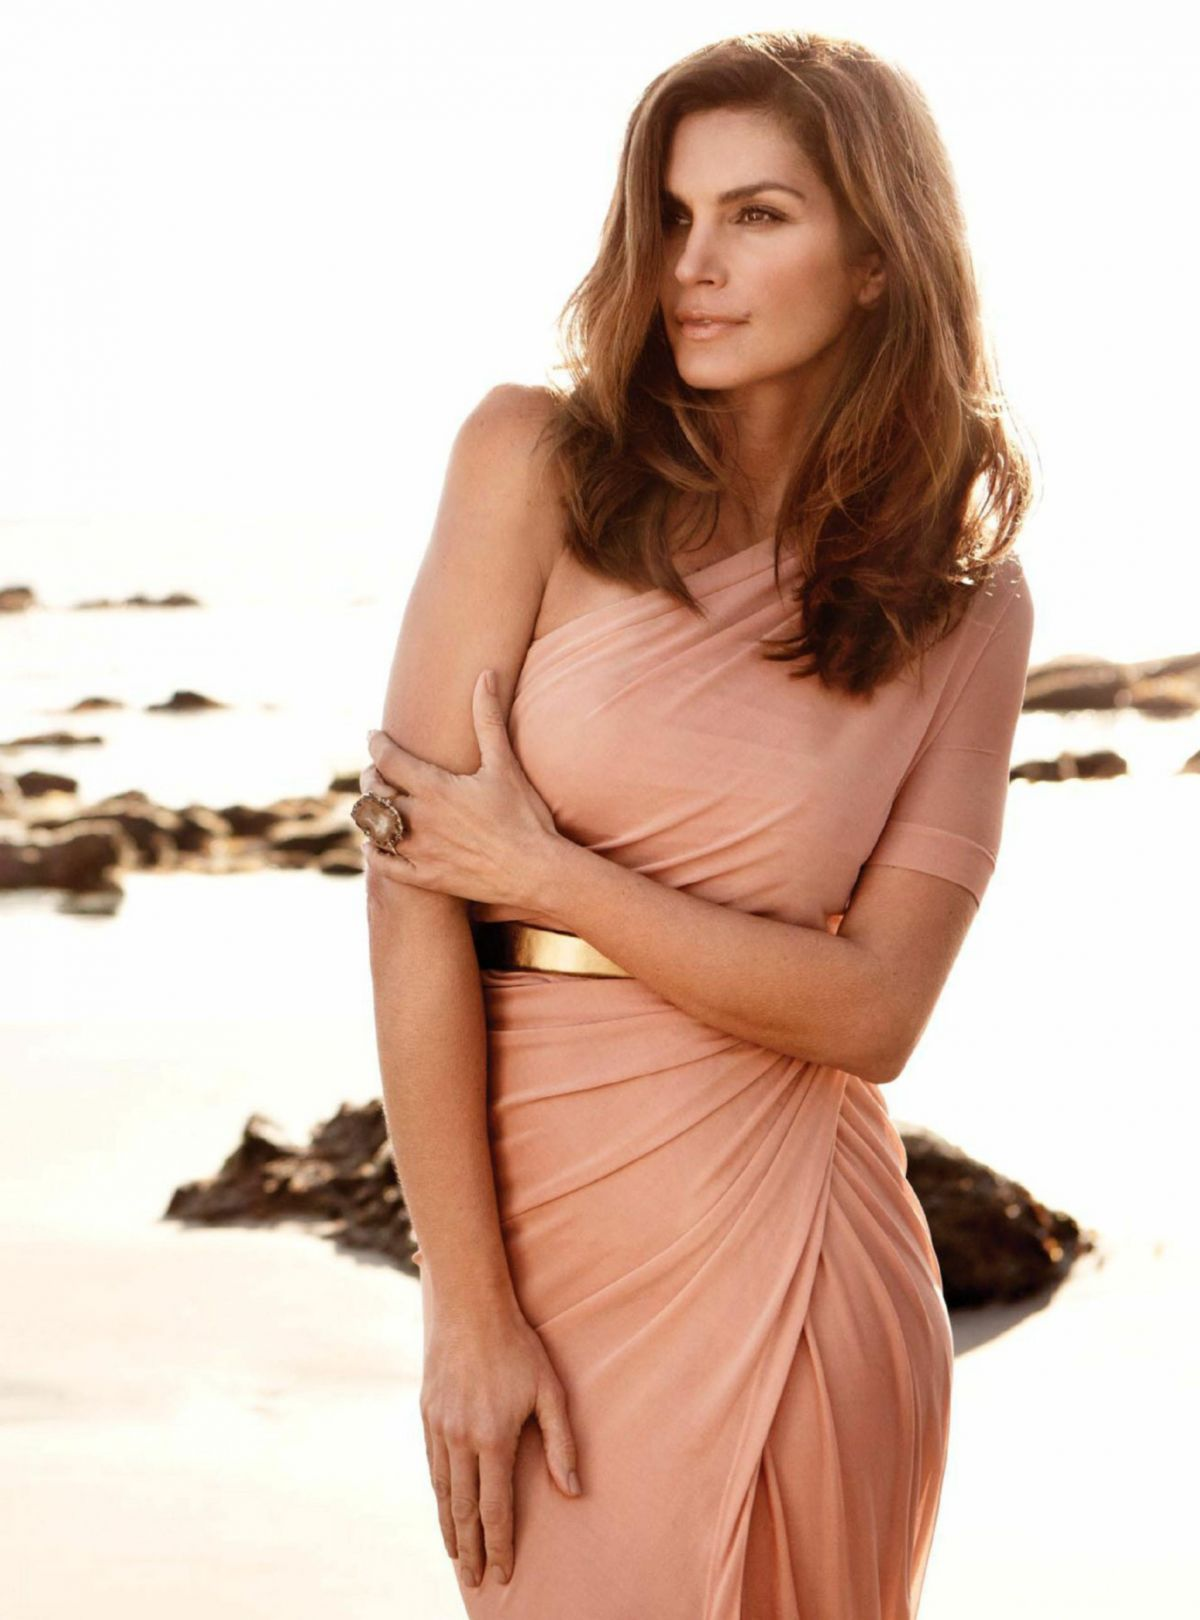 CINDY CRAWFORD in Women